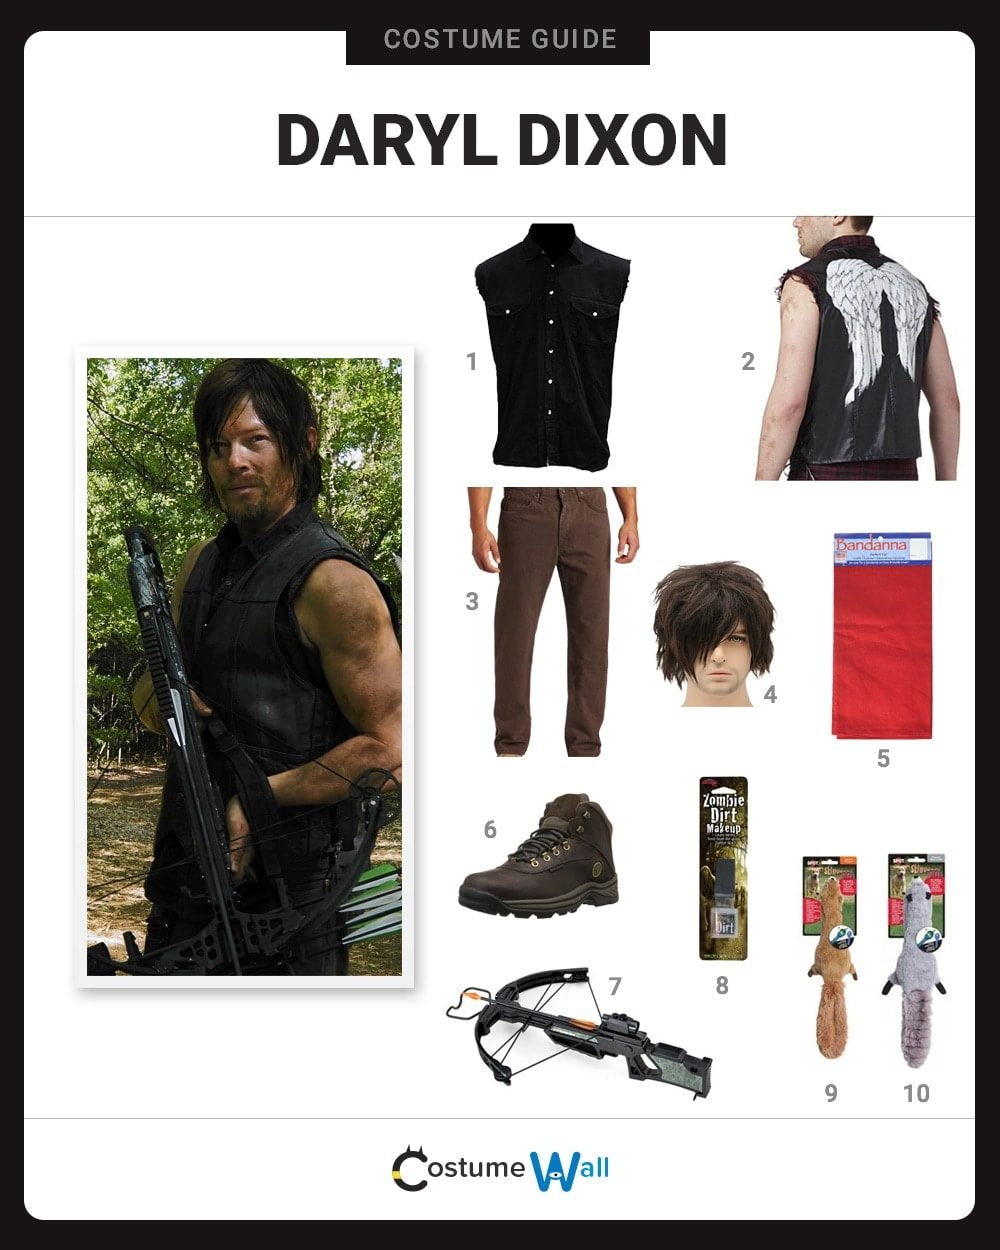 Daryl Dixon Costume Guide